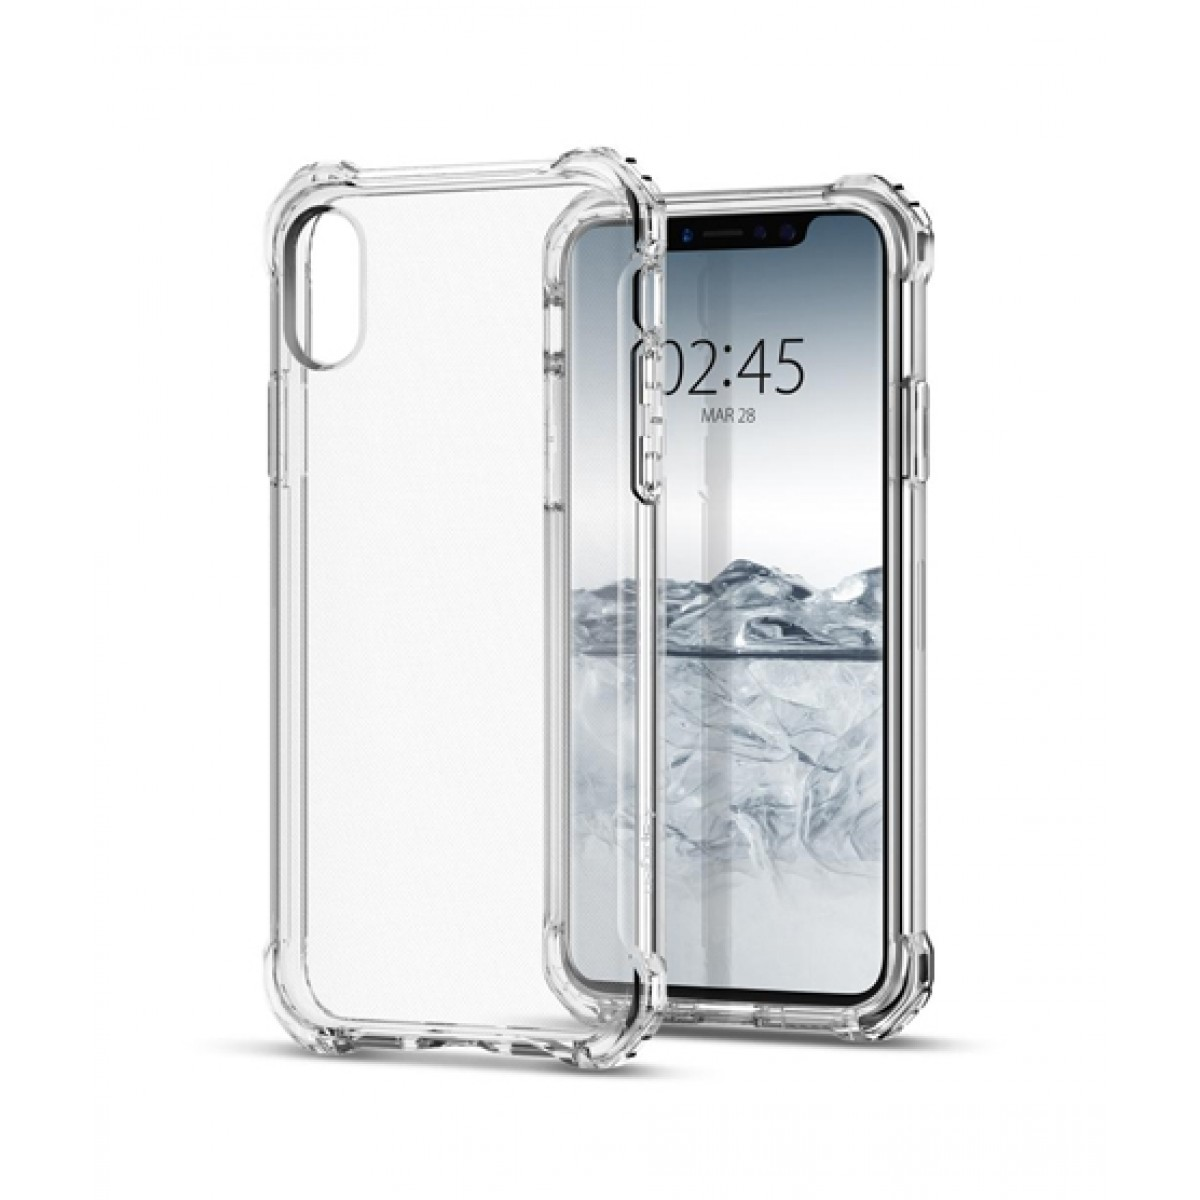 separation shoes 5d656 49459 Spigen Rugged Crystal Clear Case For iPhone X/XS